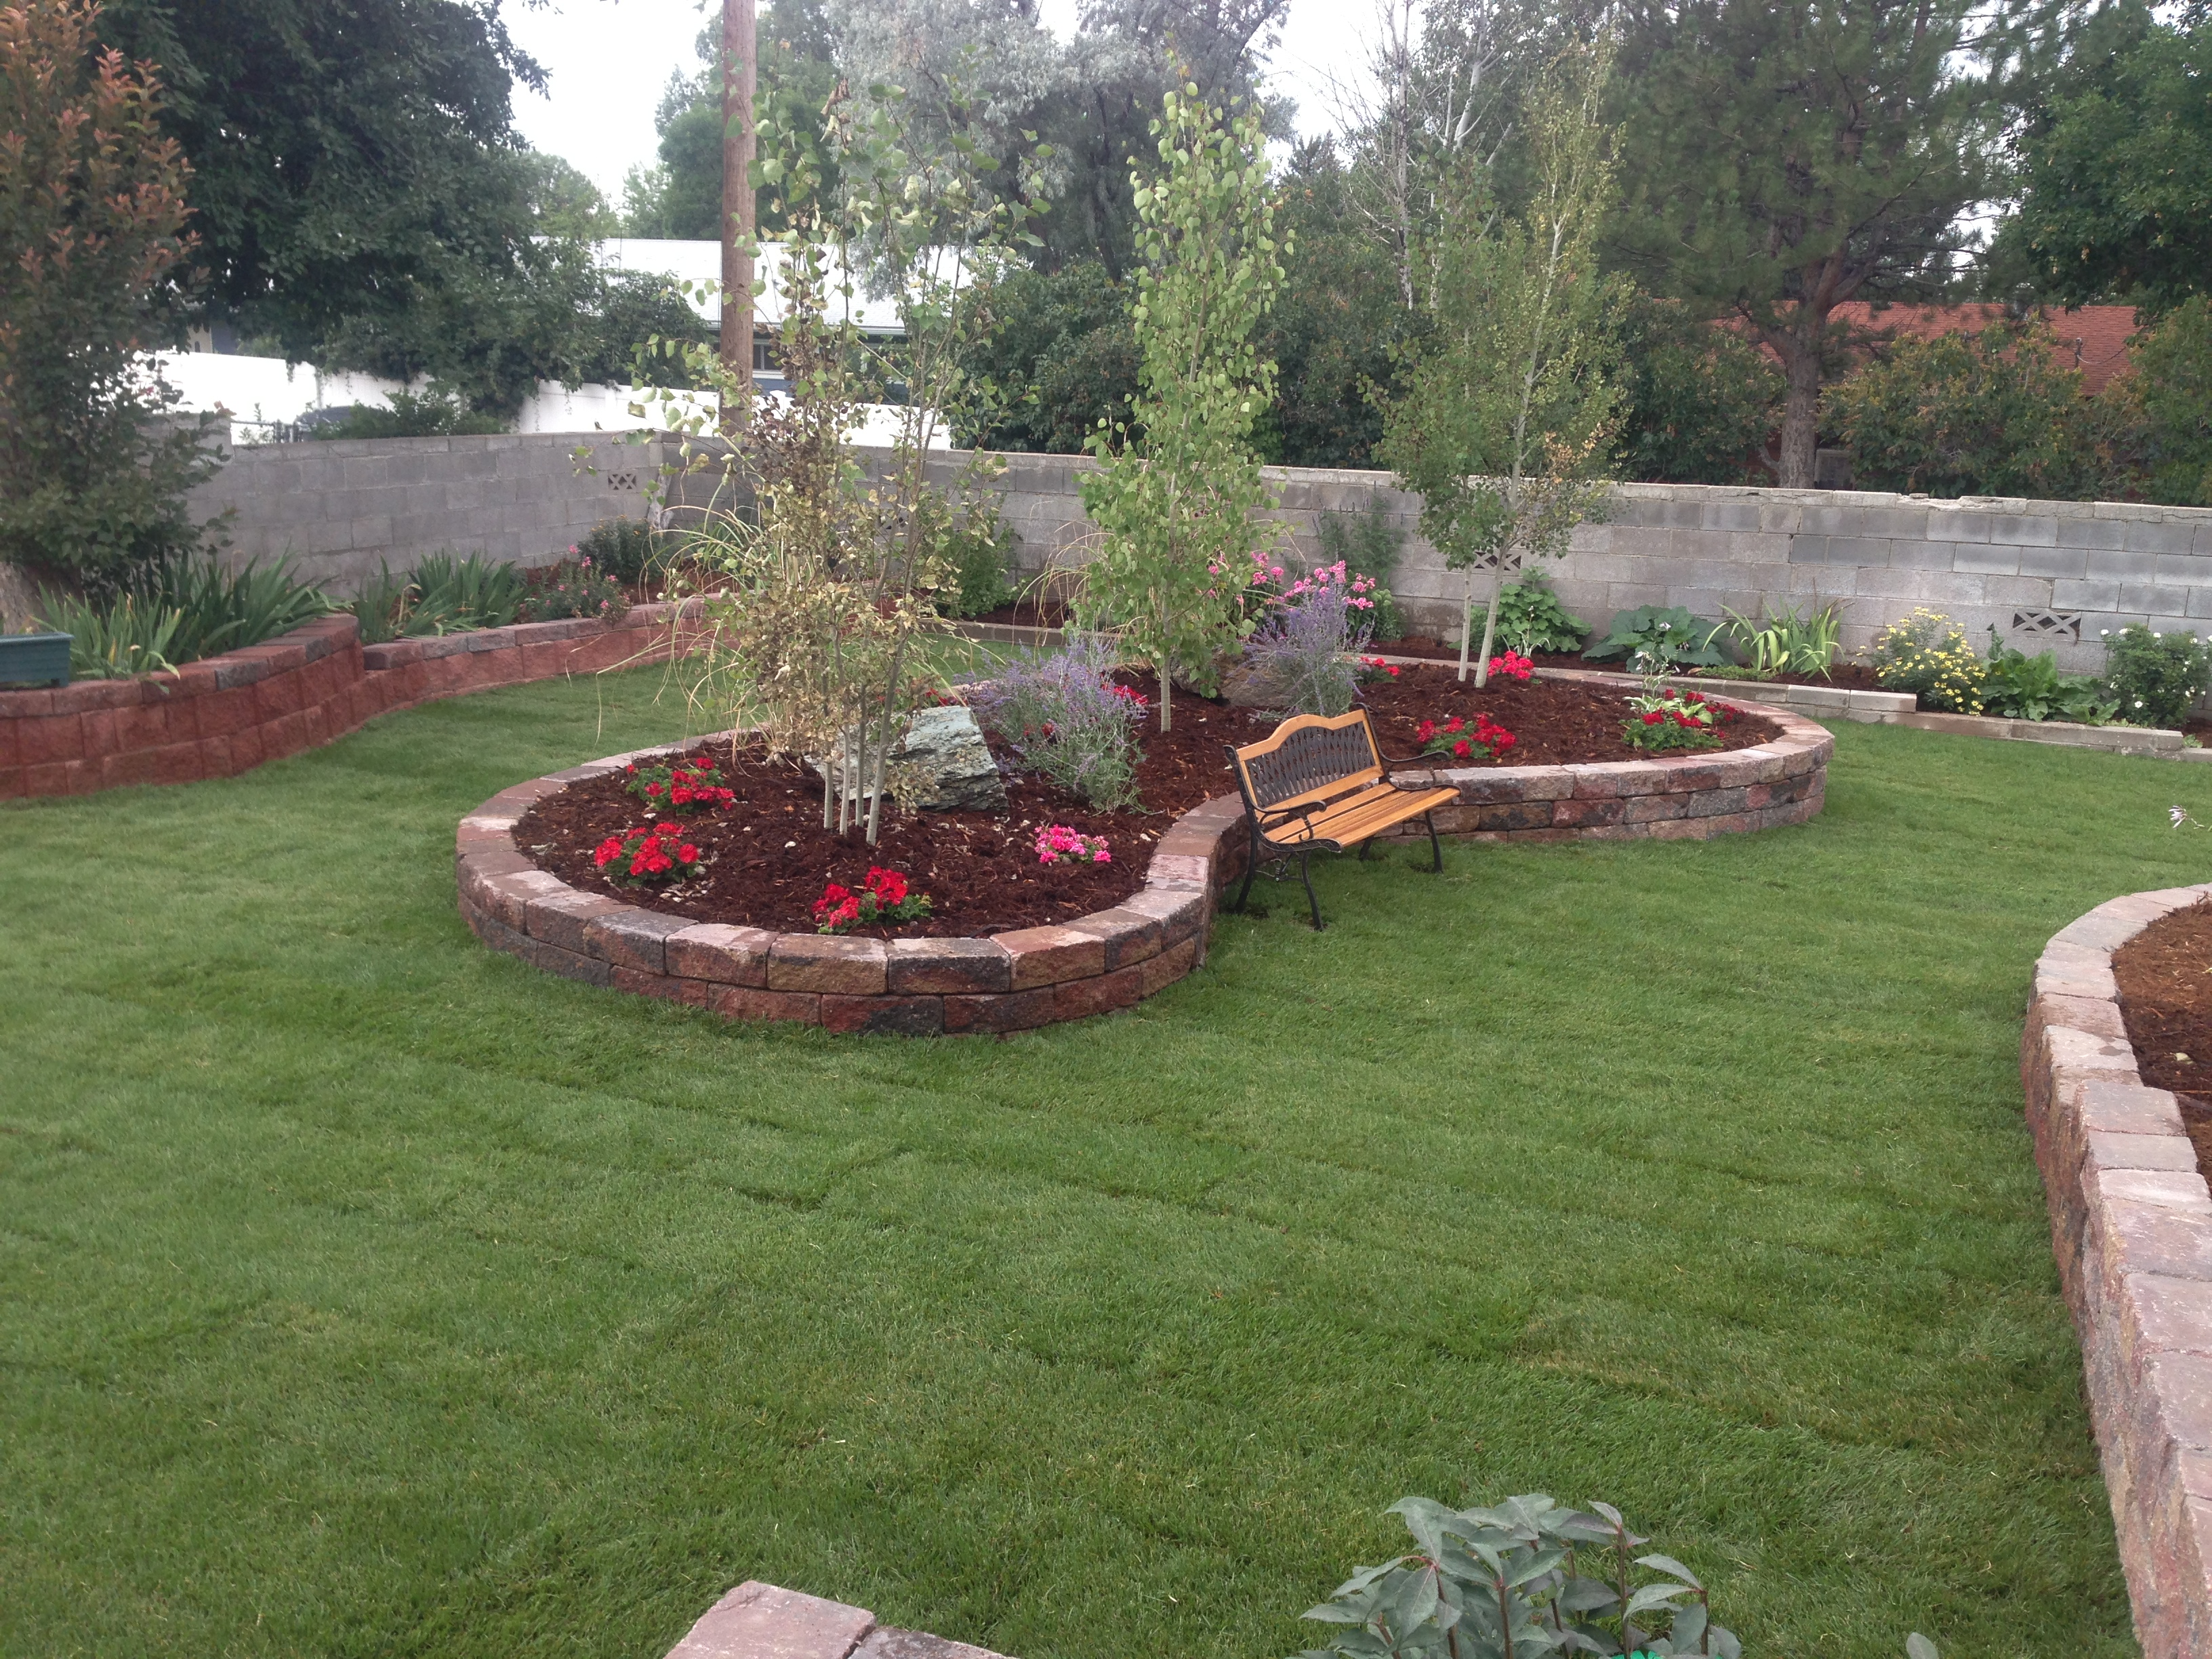 drakes landscaping and excavation